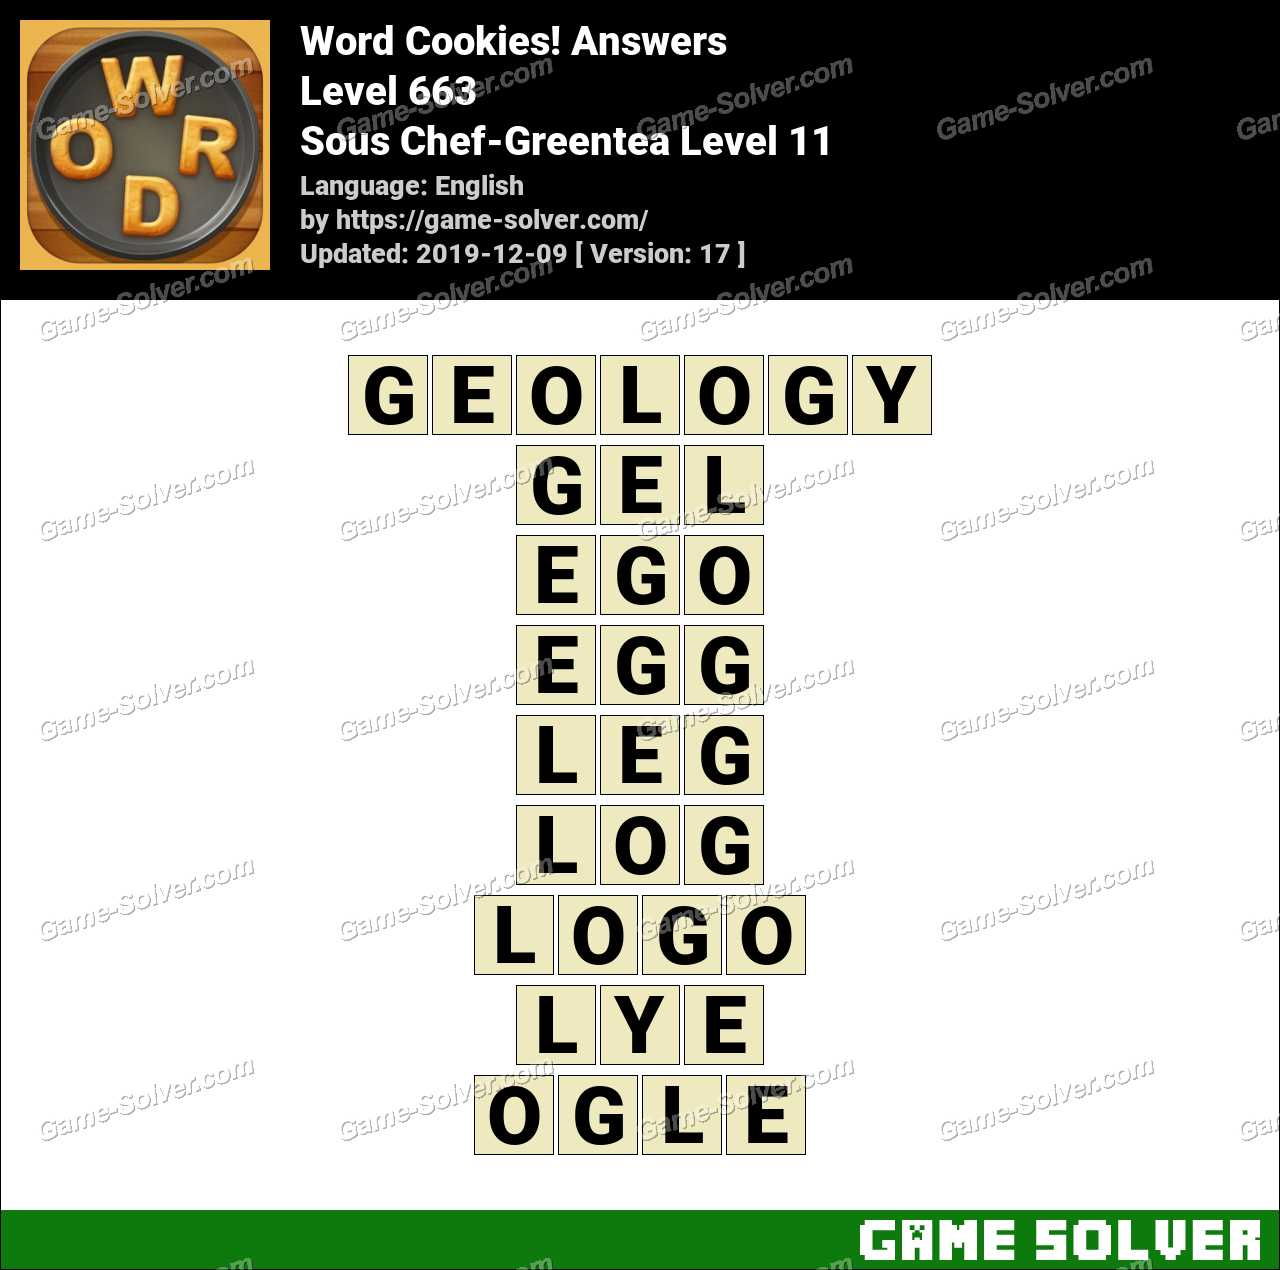 Word Cookies Sous Chef-Greentea Level 11 Answers